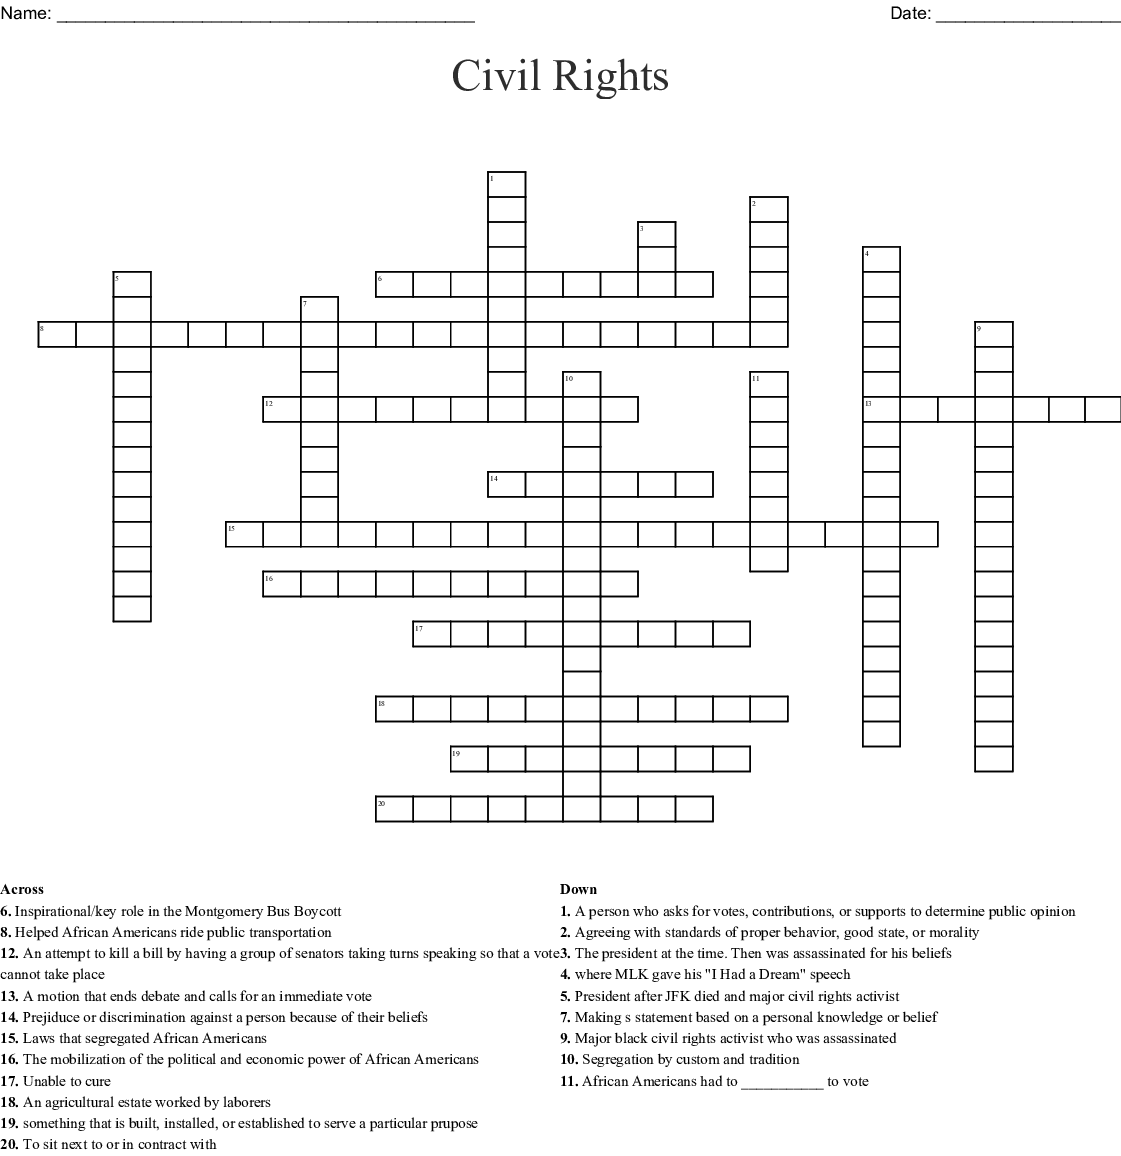 Apartheid South Africa And Human Rights Word Search